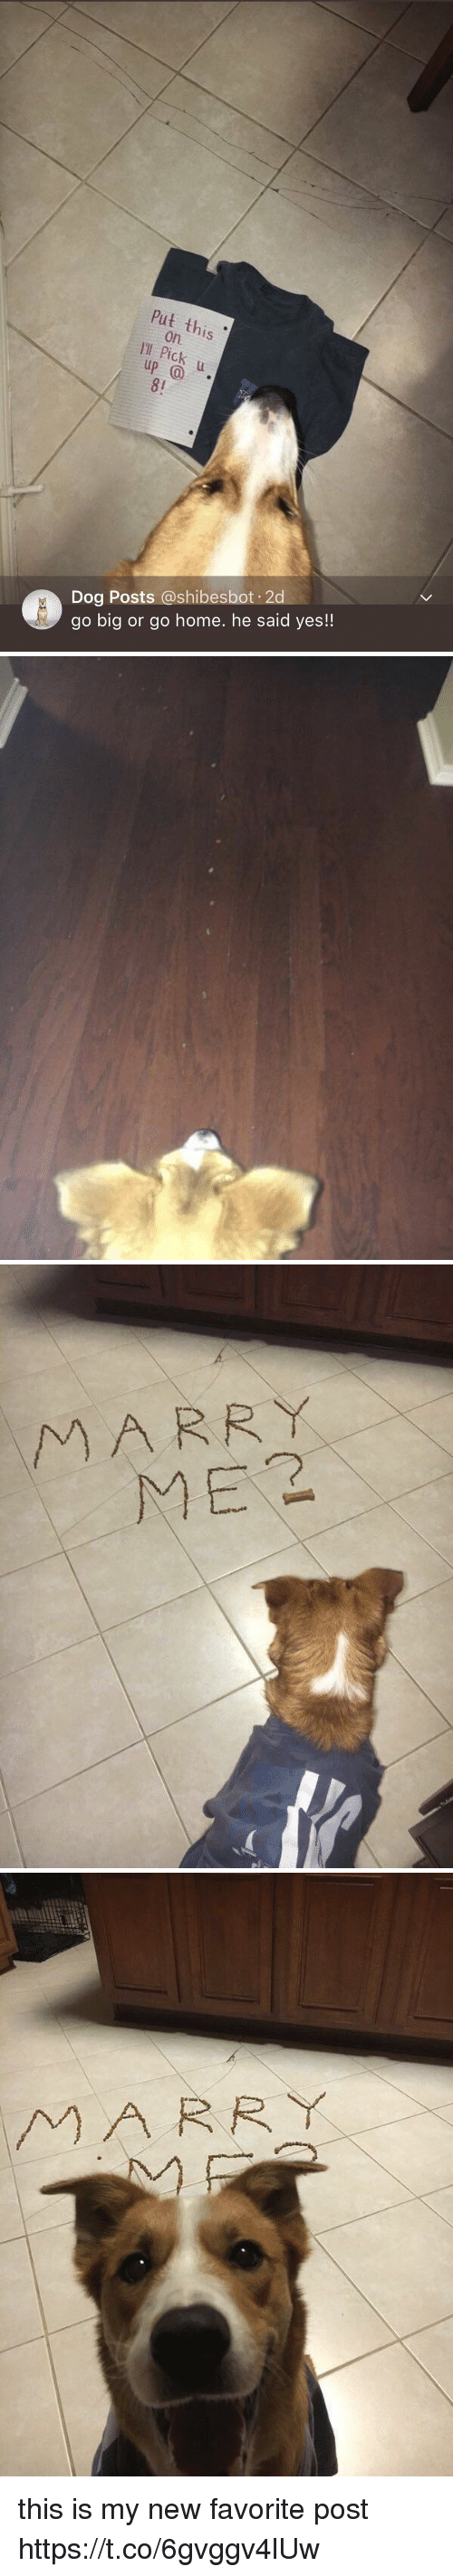 Home, Girl Memes, and Dog: Put this  on.  I'I  8!  Dog Posts @shibesbot 2  go big or go home. he said yes!!   MARR Y  ME2   MARRY this is my new favorite post https://t.co/6gvggv4lUw